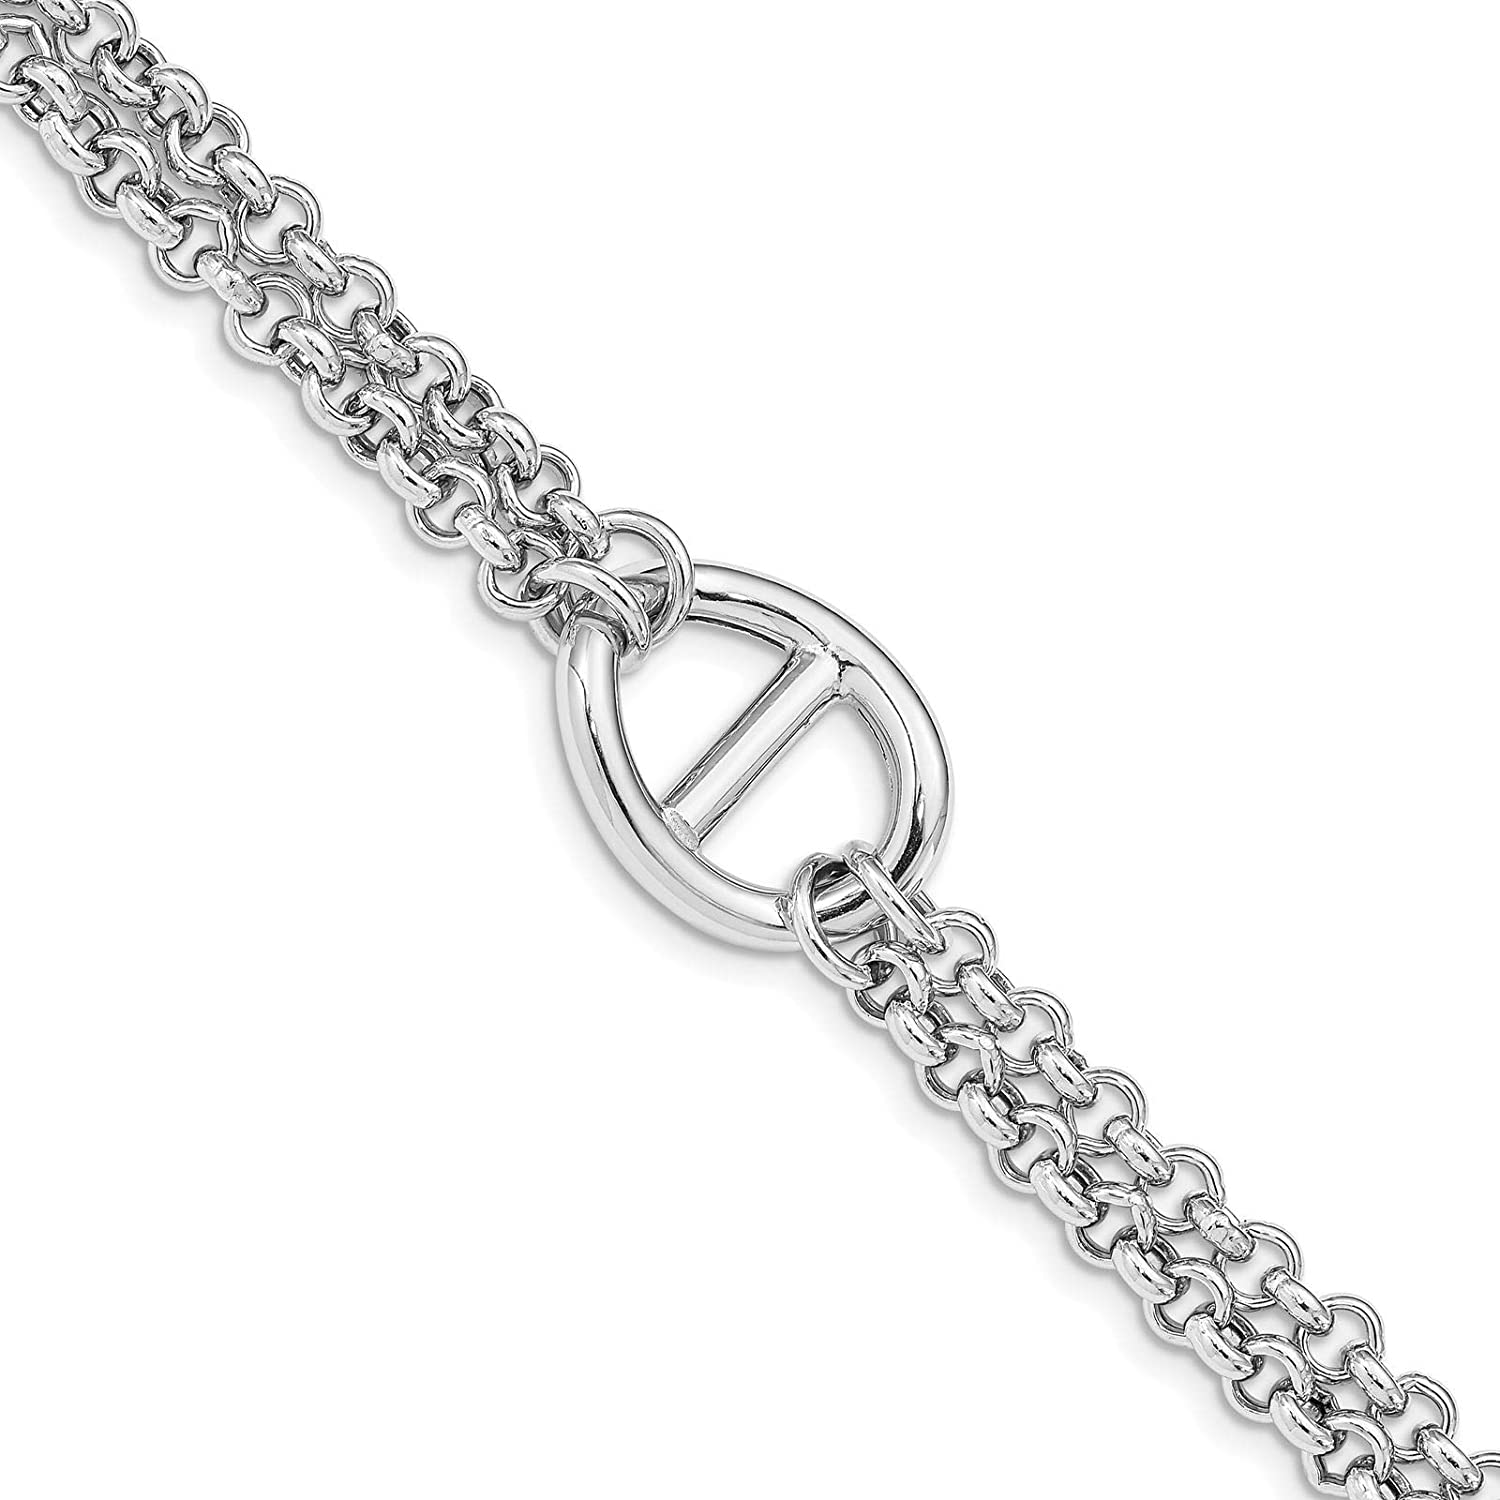 925 Sterling Silver Rhodium-plated Polished 16.5mm Fancy Link Bracelet 7.5